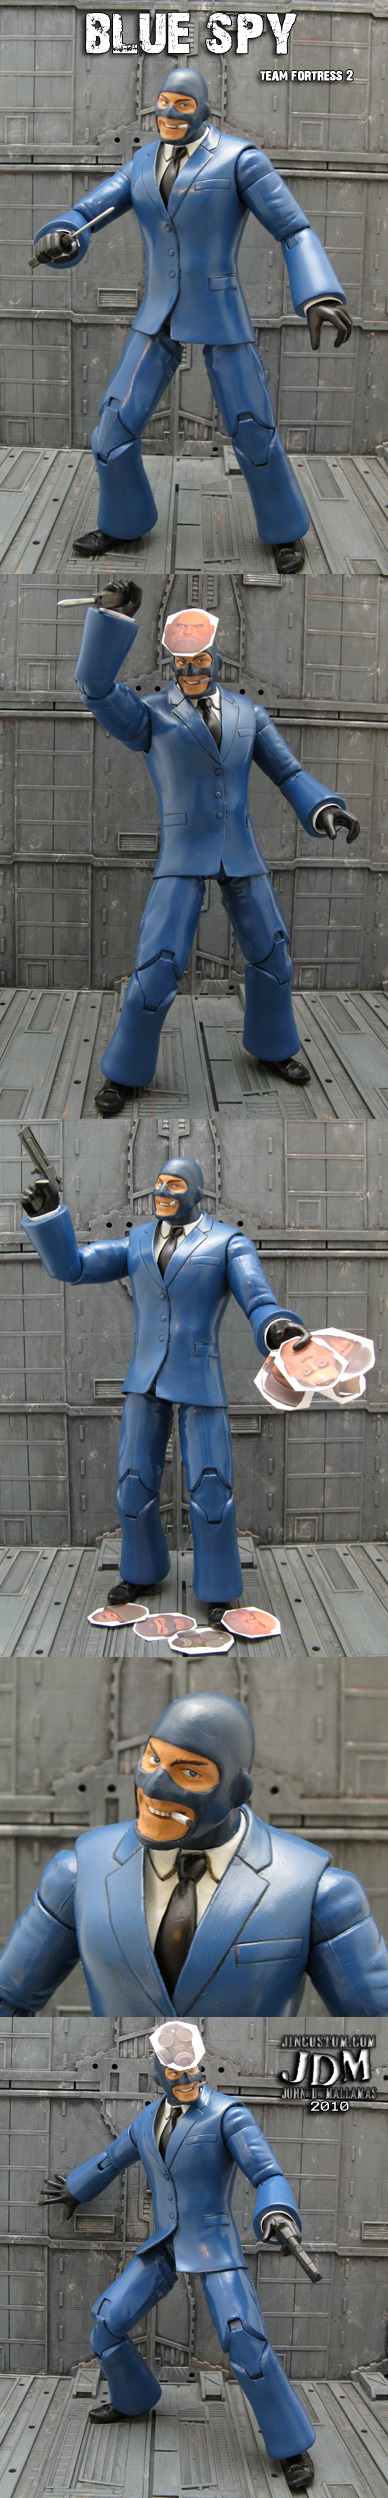 Blue Spy Team Fortress 2